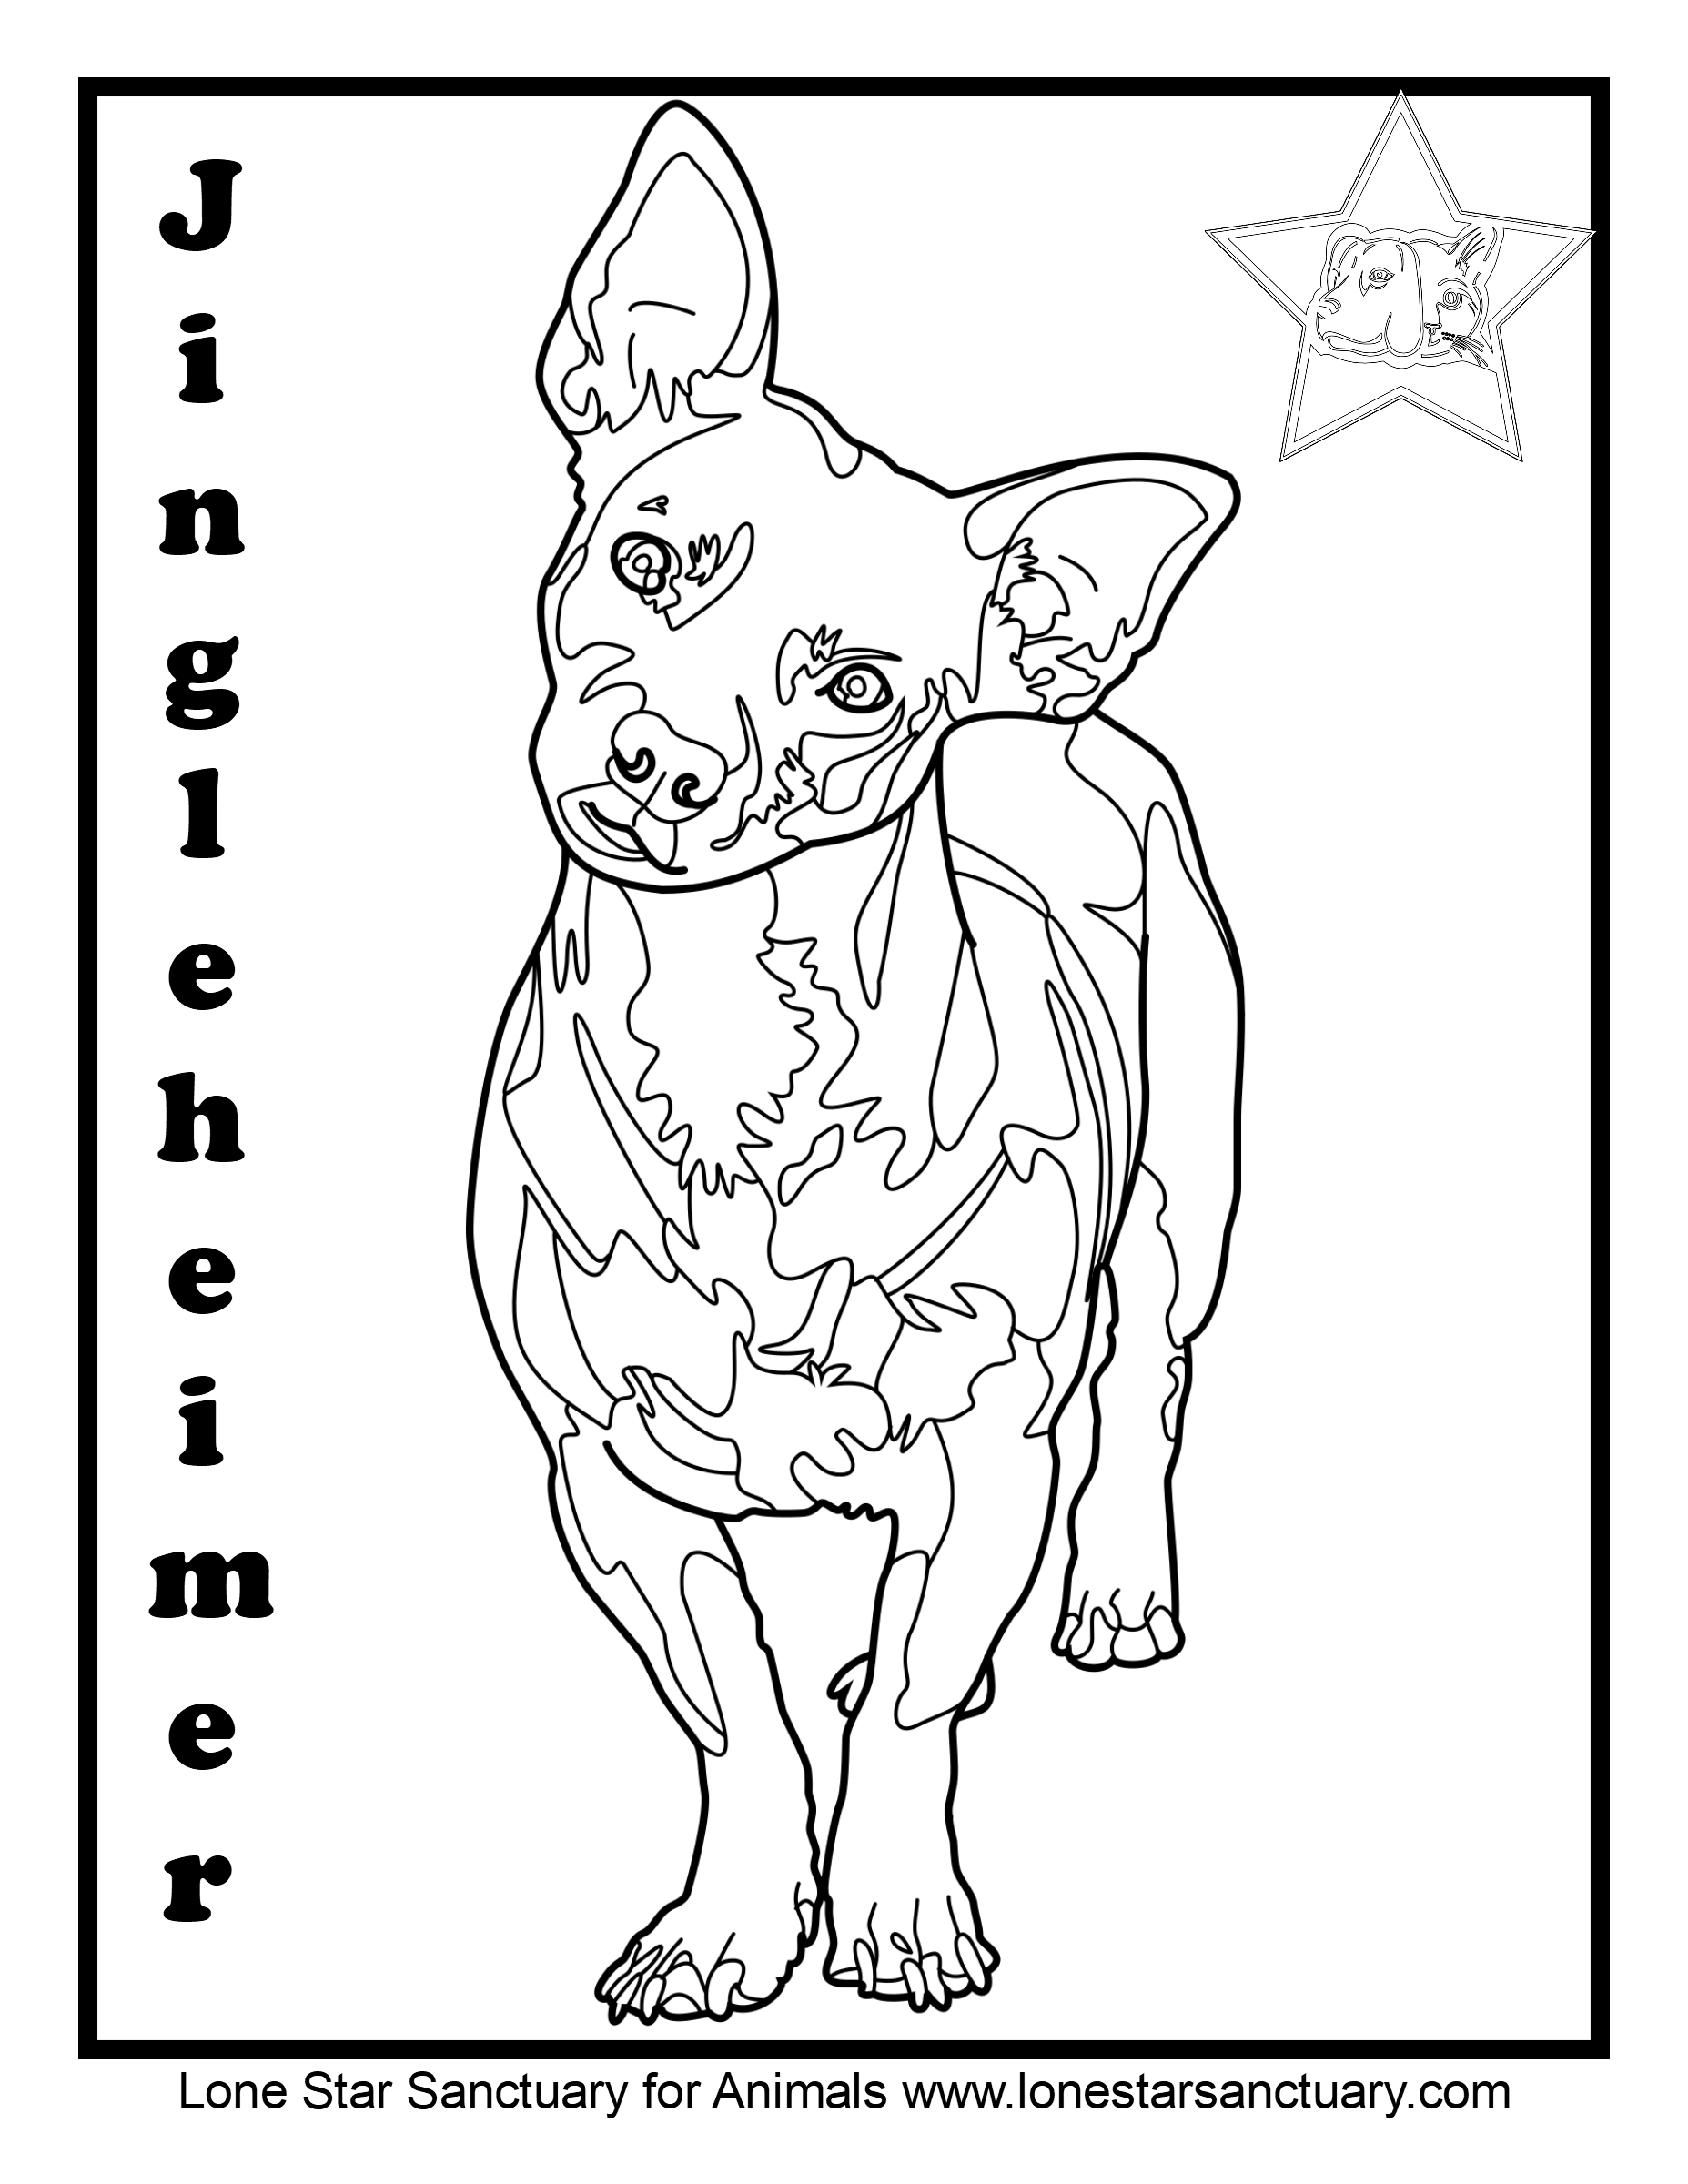 Coloring Pictures | No-kill shelter | United States | Lone ...